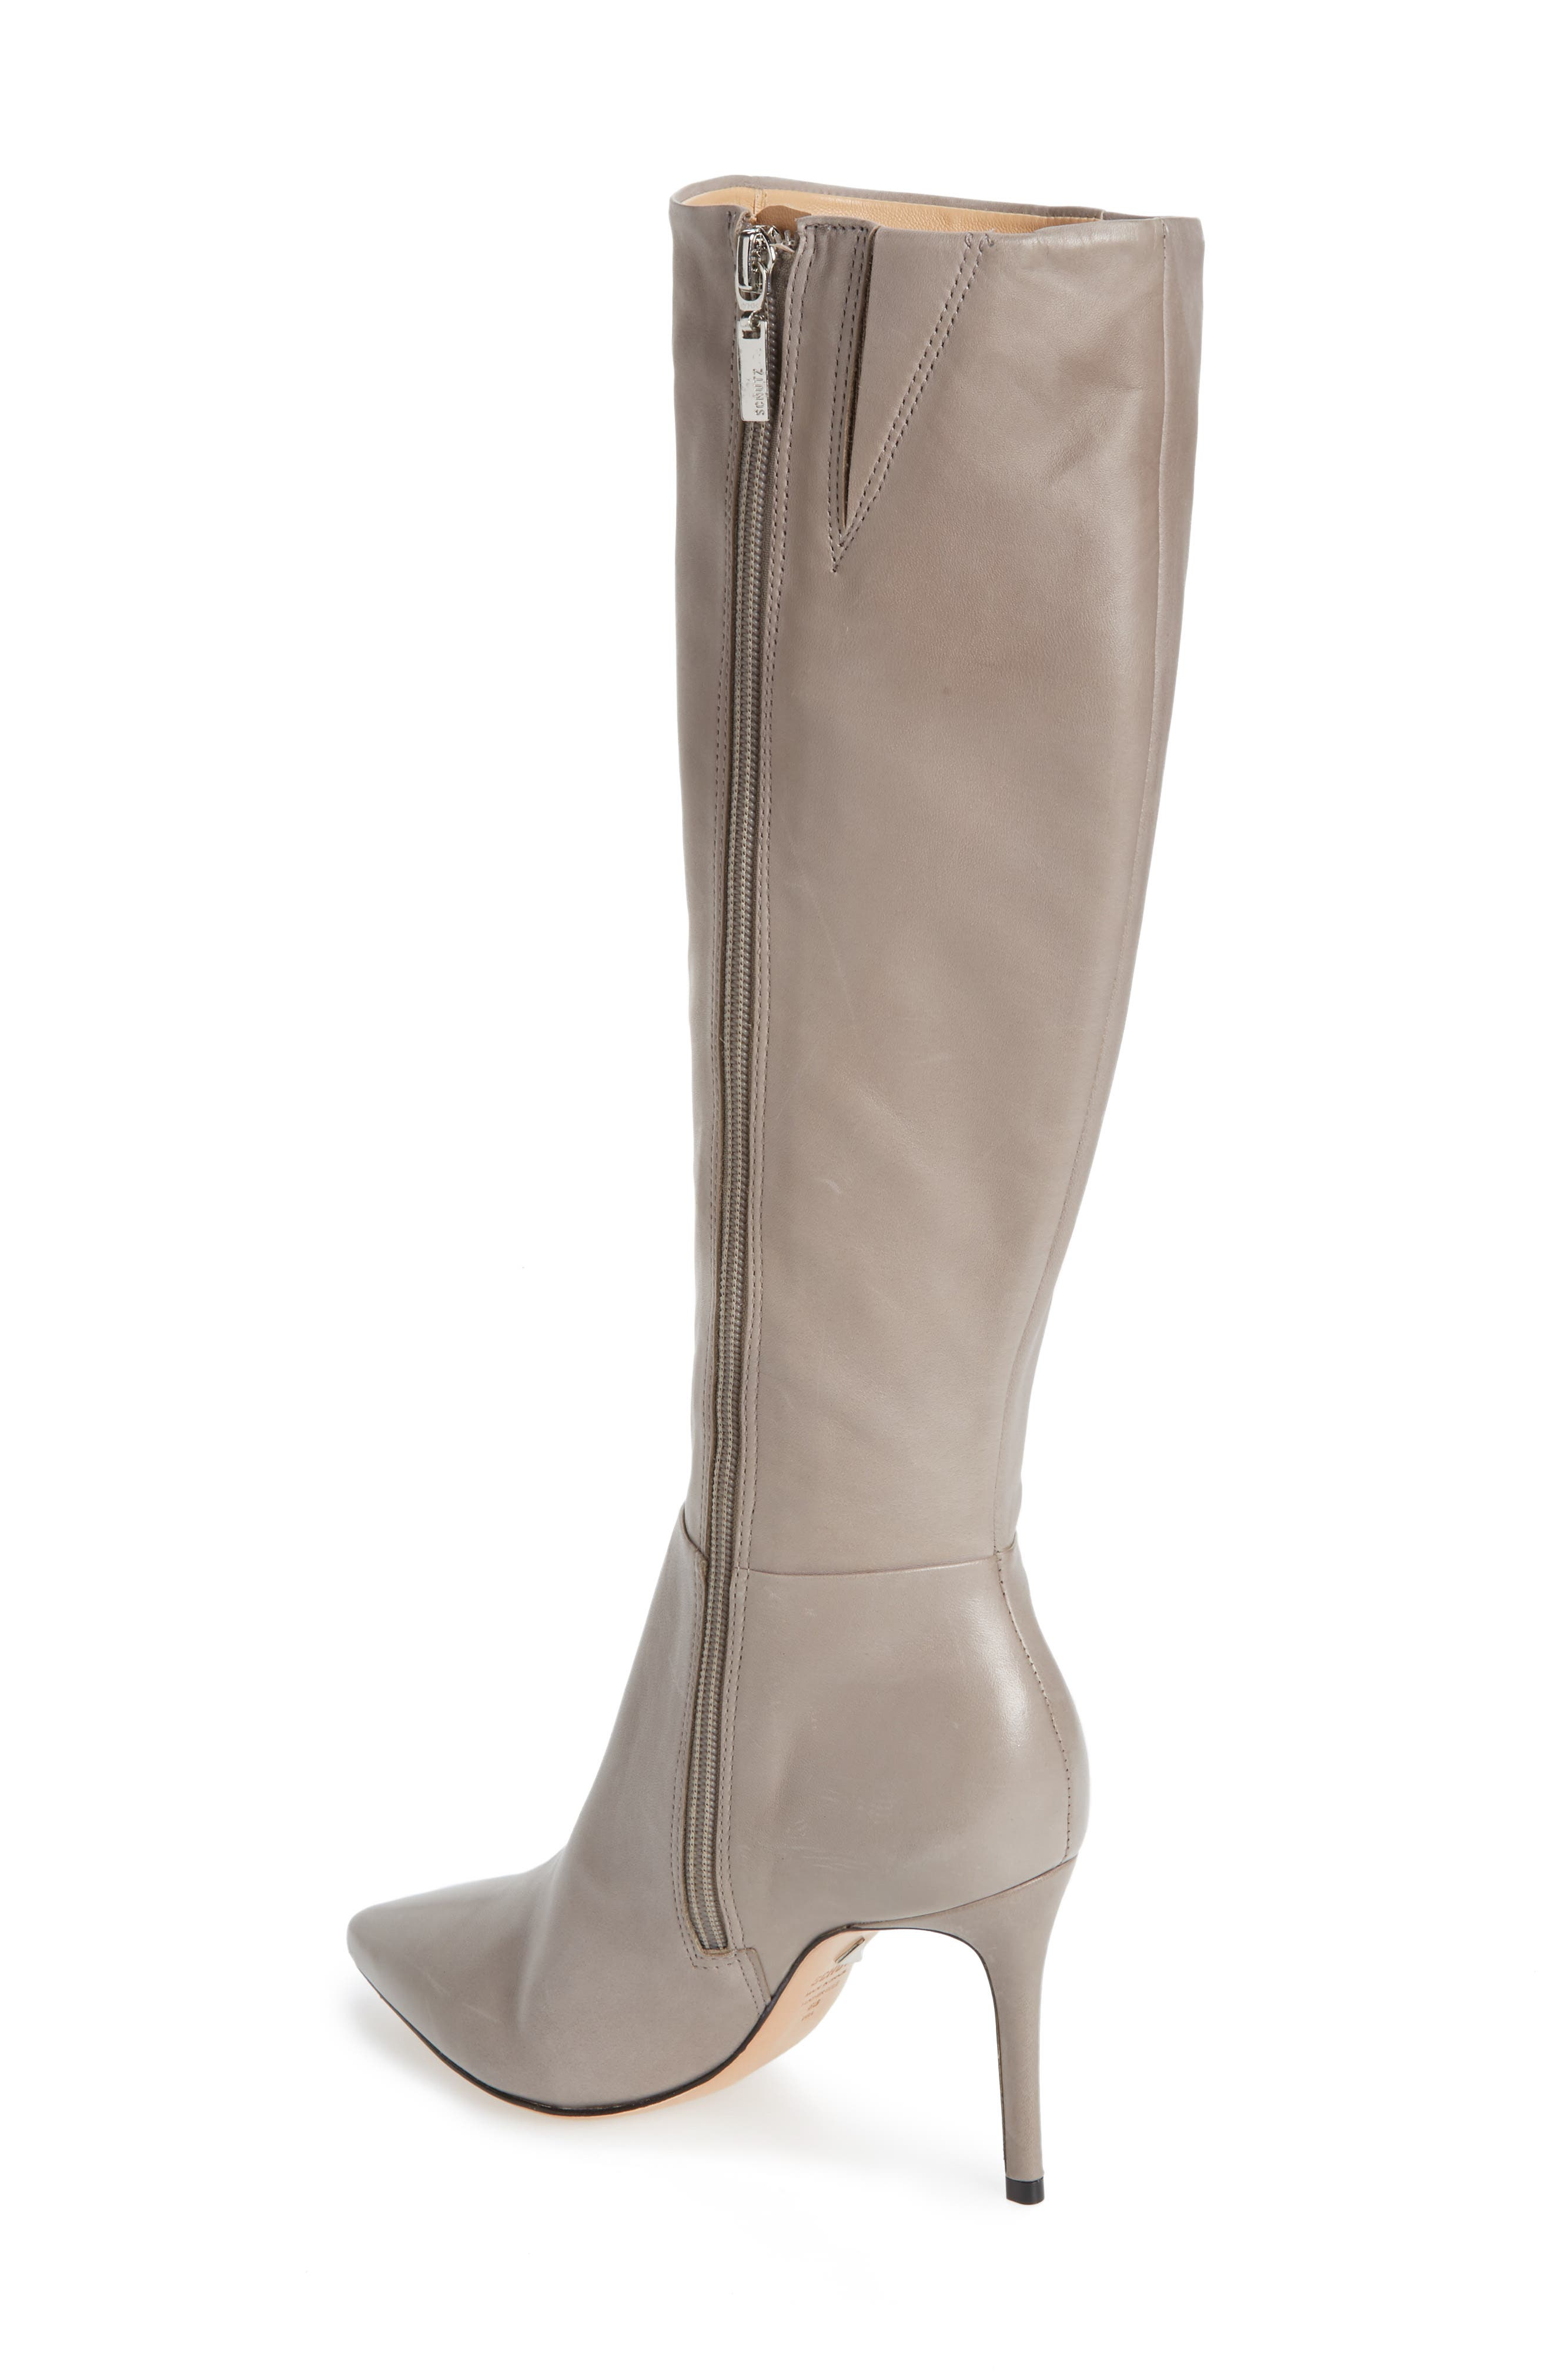 Magalli Knee High Boot,                             Alternate thumbnail 2, color,                             MOUSE LEATHER